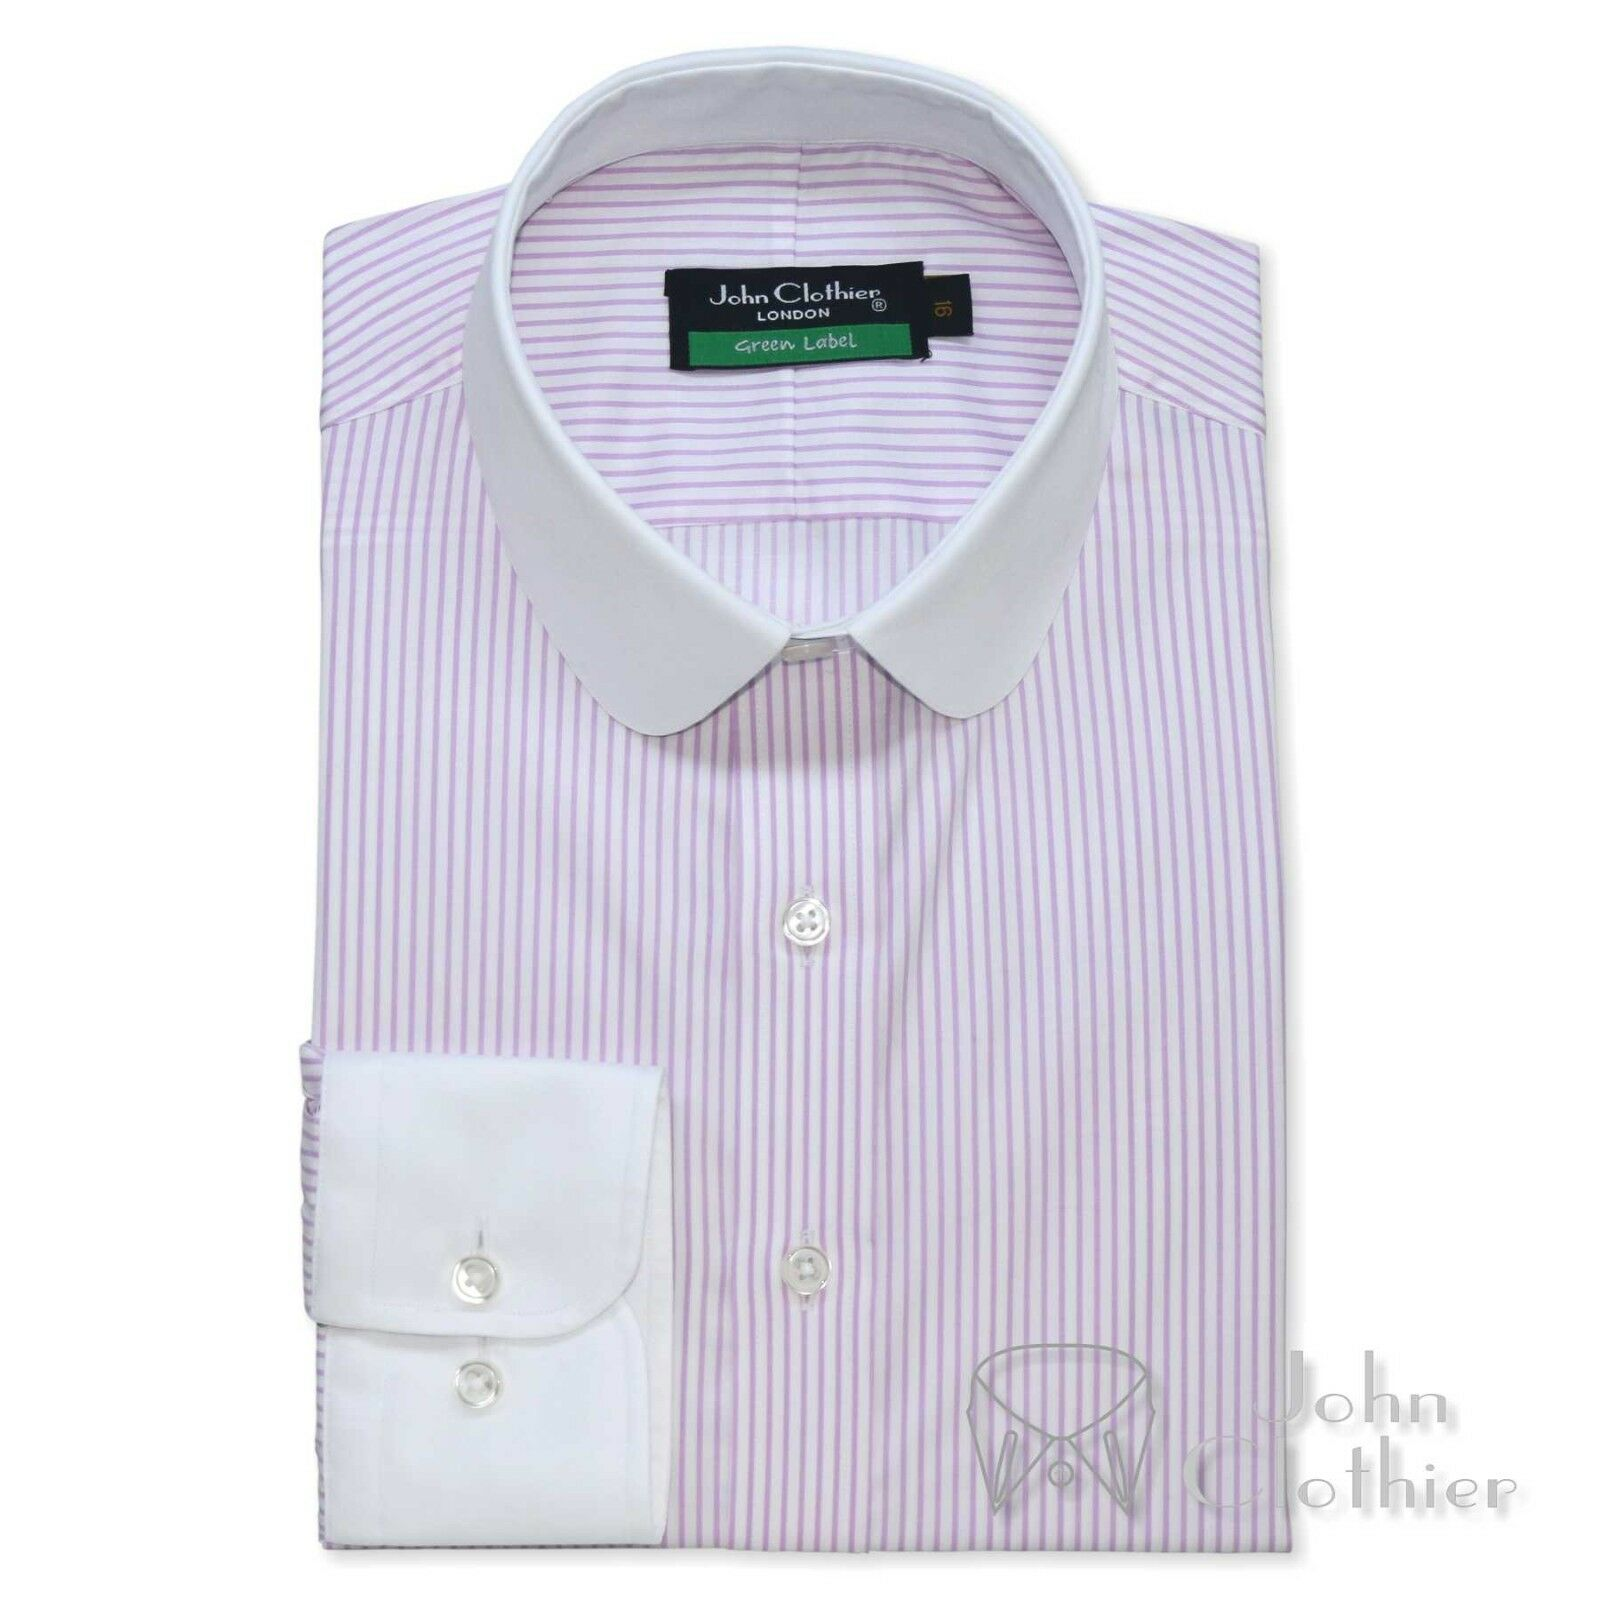 Herren Cotton shirt Club collar Bankers style Lilac Weiß stripes Penny Suit shirt